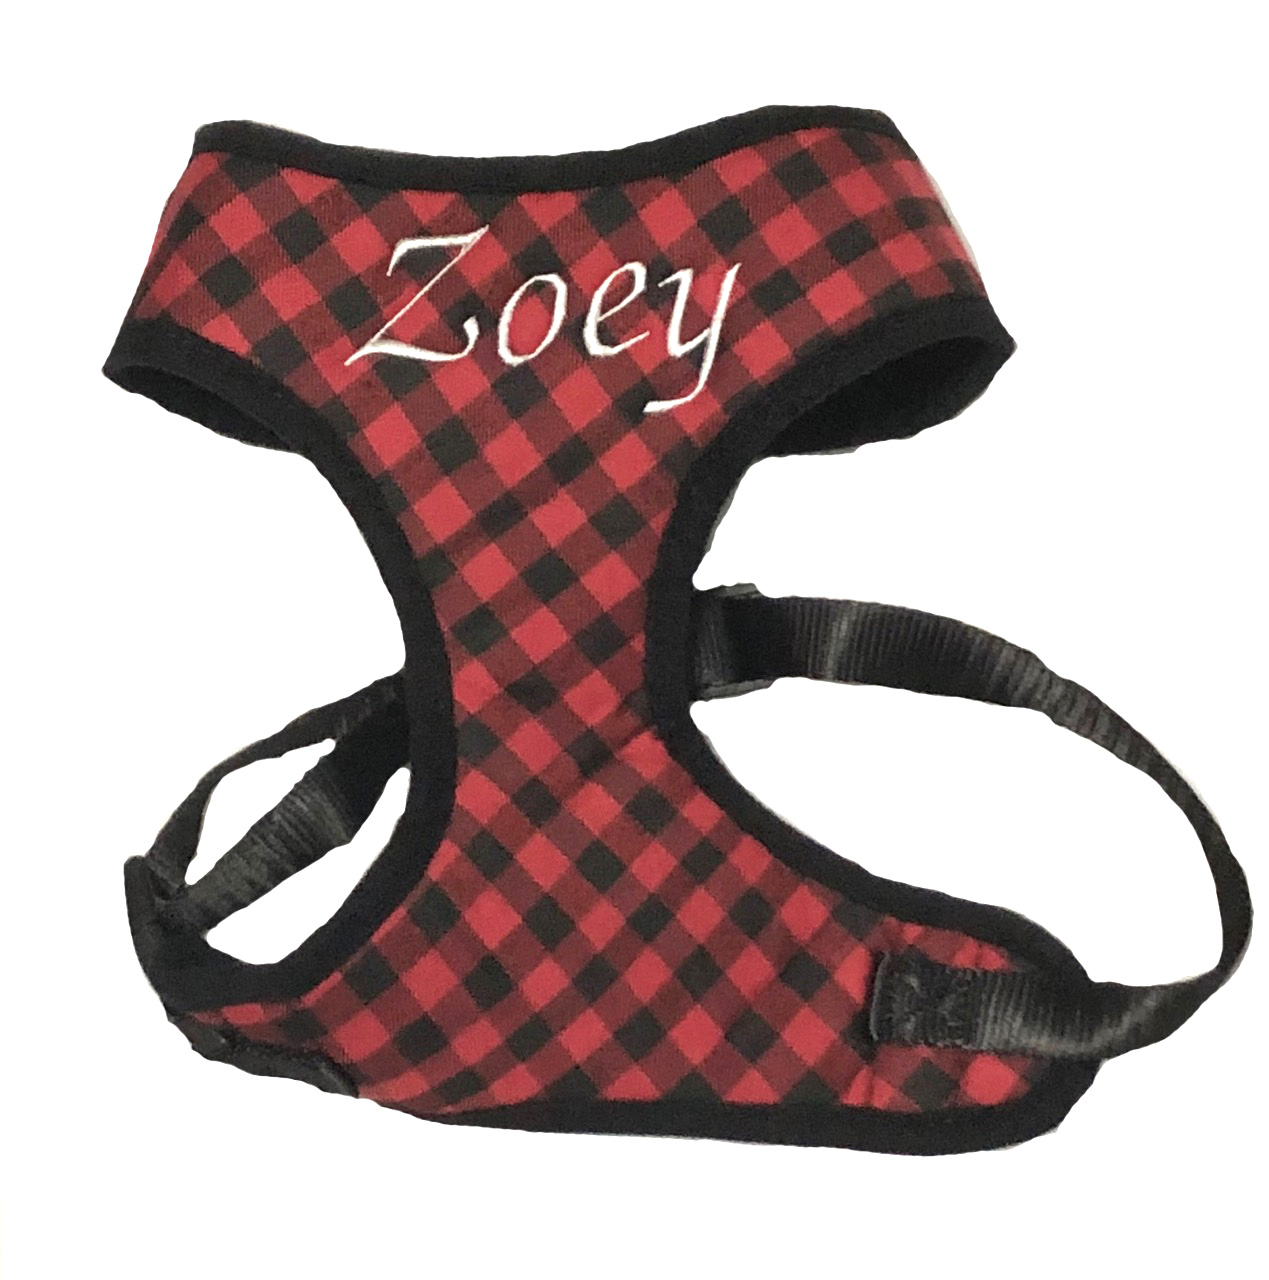 #1 Best Seller Personalized Buffalo Check Dog Harness Custom Embroidered with Name